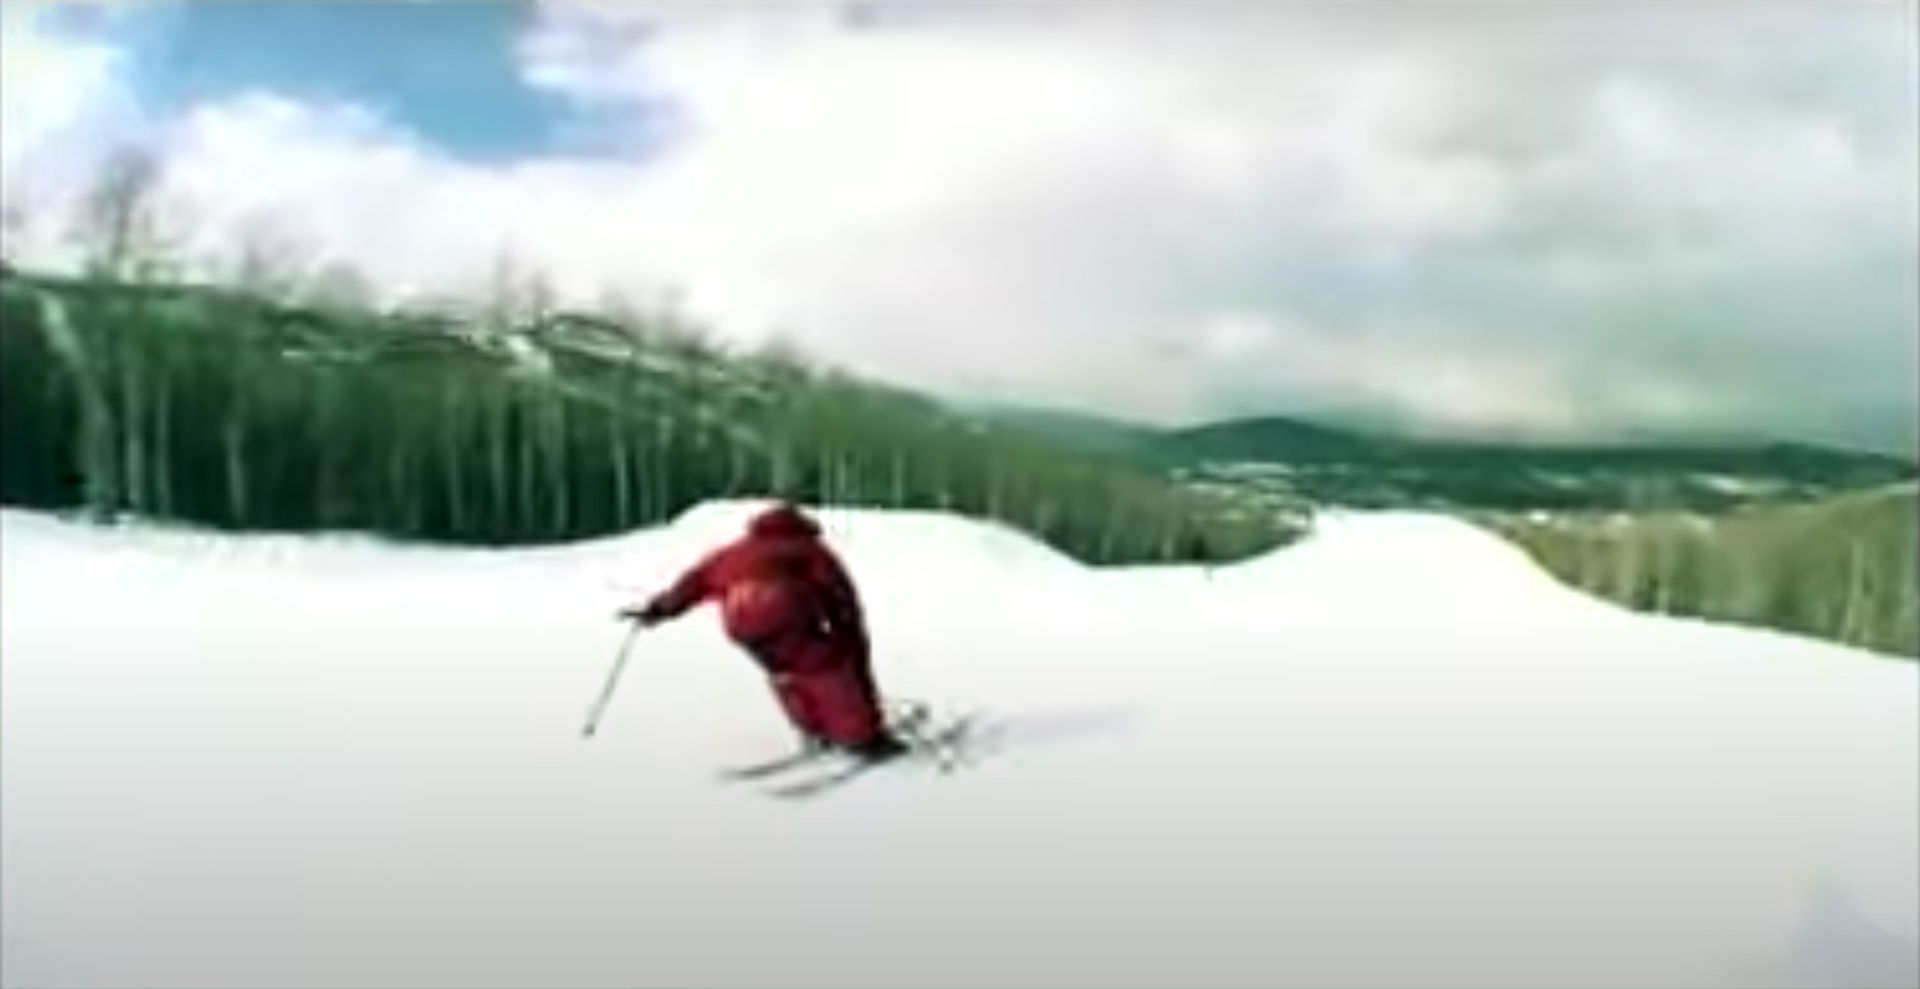 man in skis going down snowy slope in short film Exact Science by Mickael Deschenaux